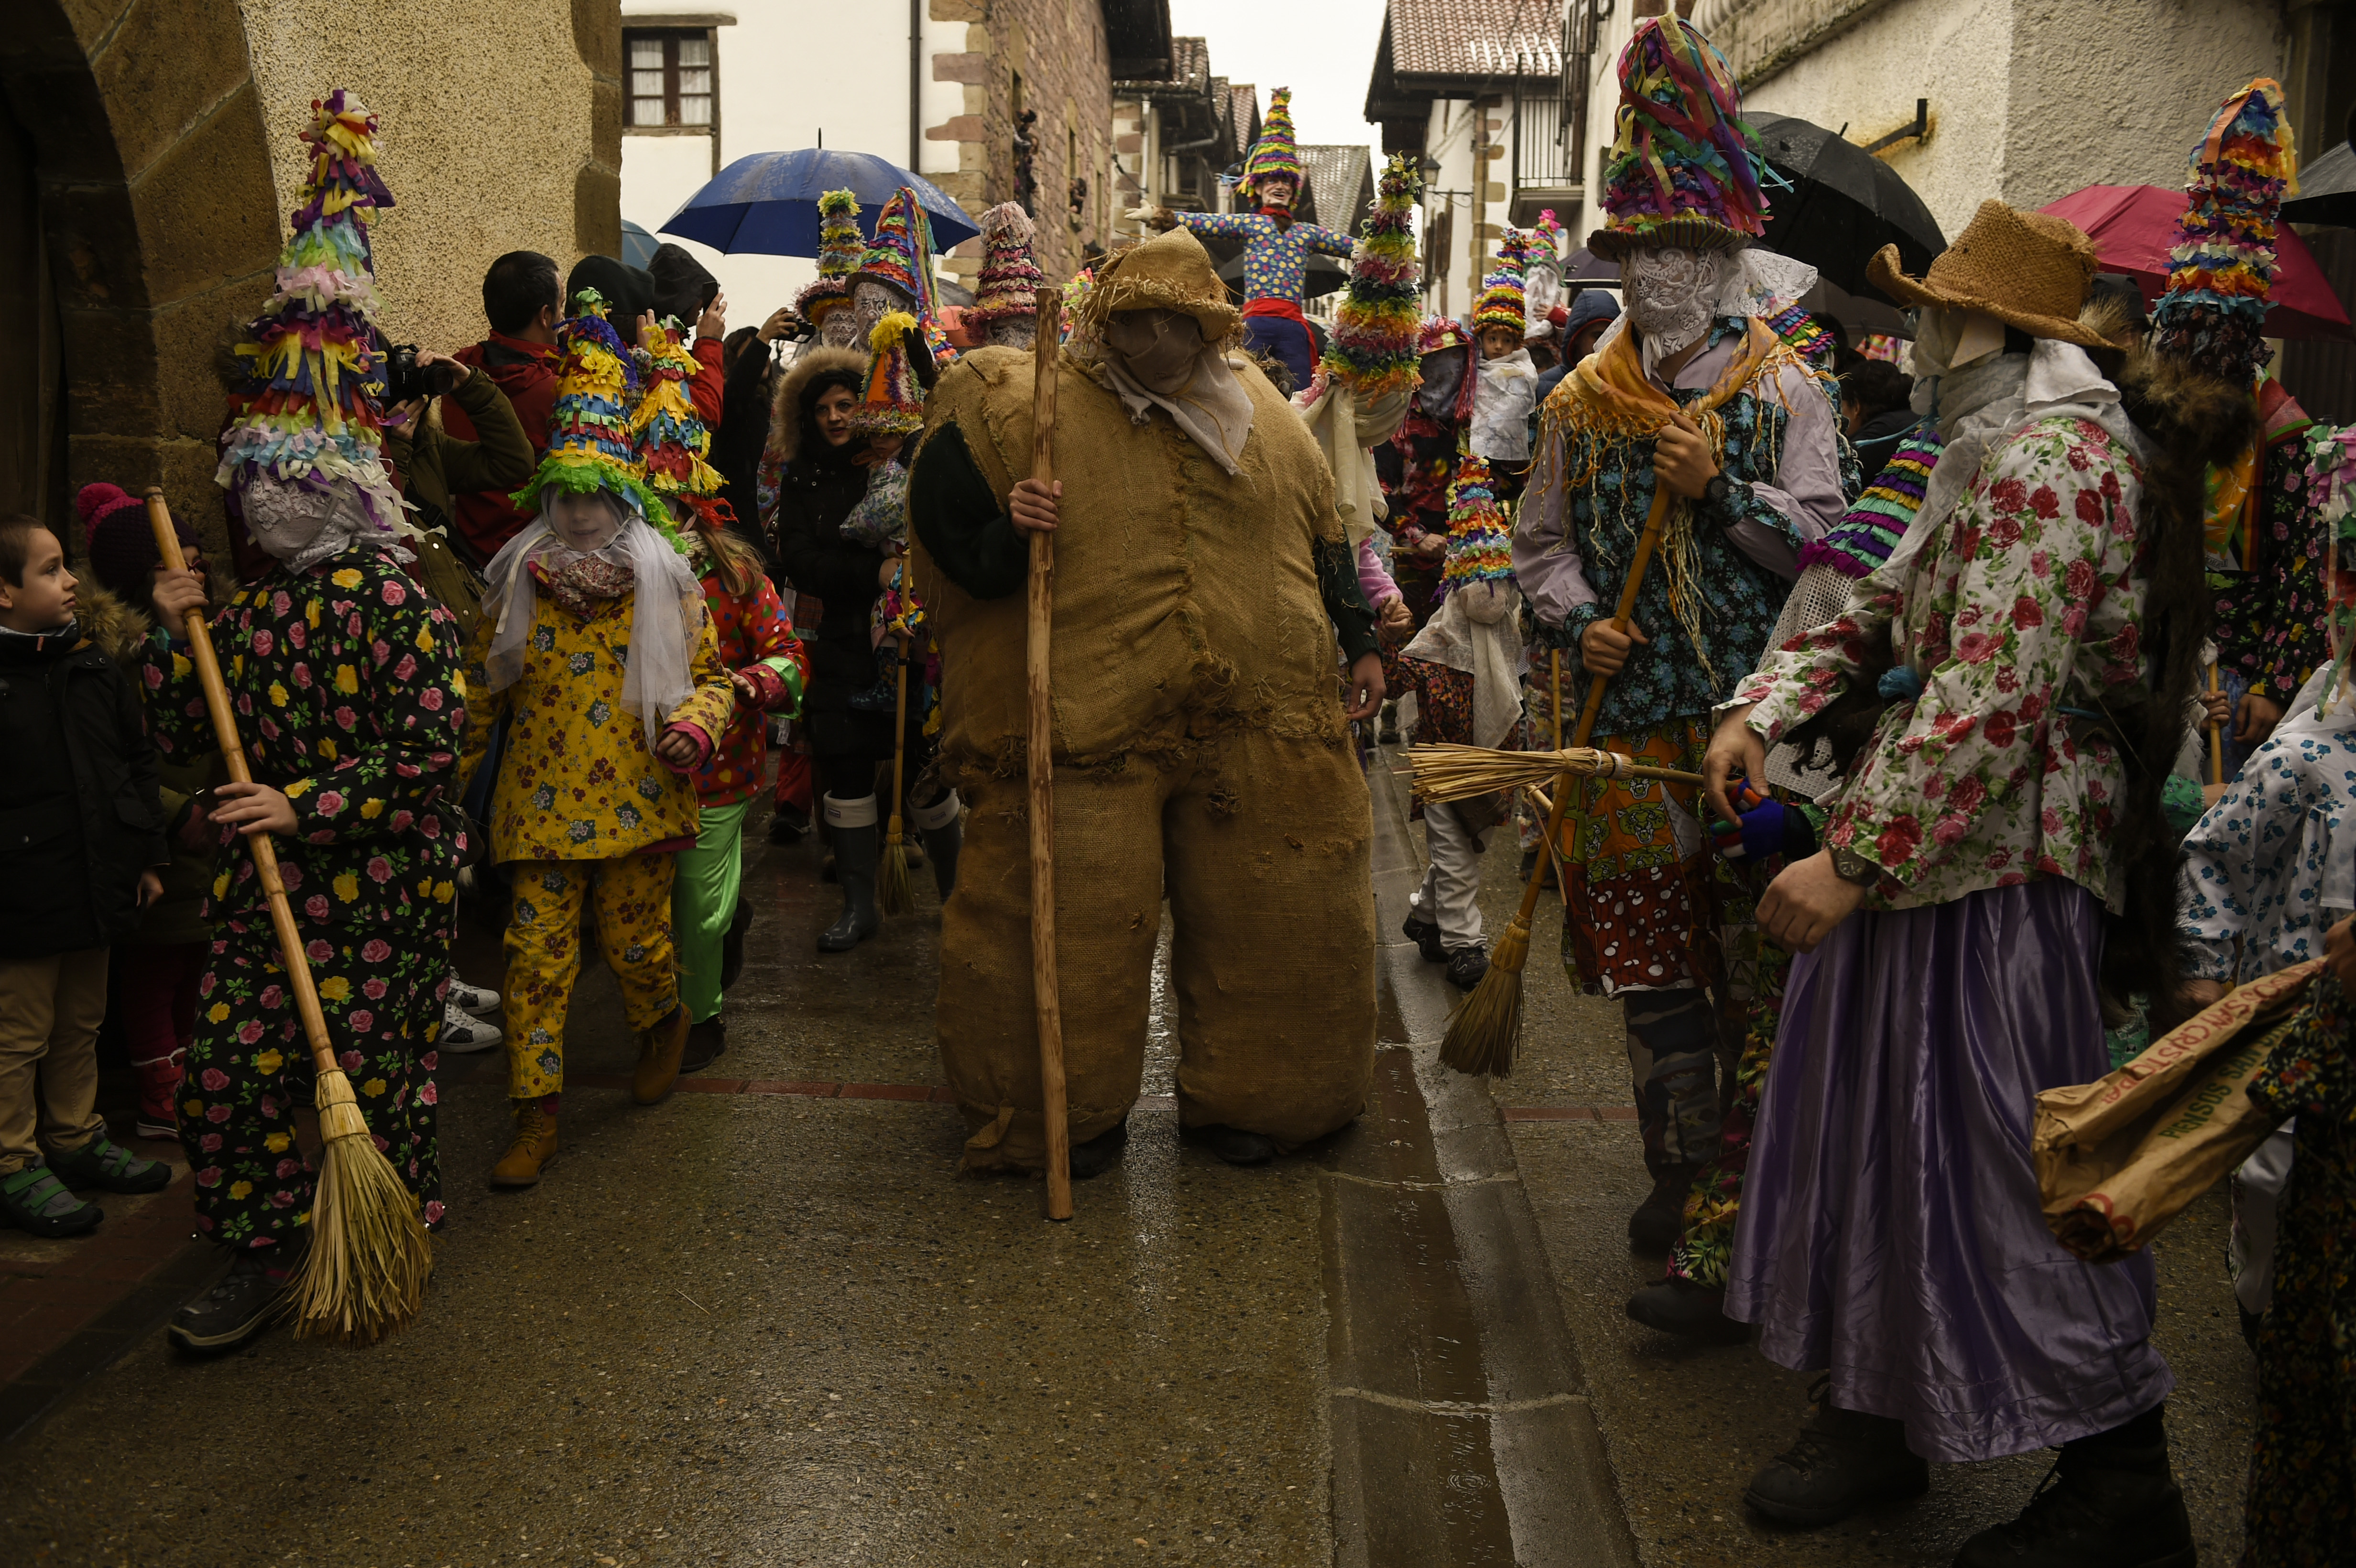 Rural carnival of Lanz is held on February 11, 2018 in Lantz, Spain. The carnival is a great tradition, where the forces of evil and good face-off in a symbolic battle in which the thirst of justice mobilizes the popular ires. Several prominent figures accompany him in the parade: Ziripot, easy-going man and chubby person done based on stuffed sacks of ferns and hay, who scarcely can be kept in foot; the Zaldiko, horse chases fierceness that rushes forth at him up to it throwing at the soil; the Arotzak carry hammers and pliers, and run after the Zaldiko to shoe it, and finally the Txatxos, which sheathed in skins of animals and armed with sticks and brooms, shout while scourge to all the presents. (Photo by Oscar Zubiri / Pacific Press/Sipa USA)(Sipa via AP Images)